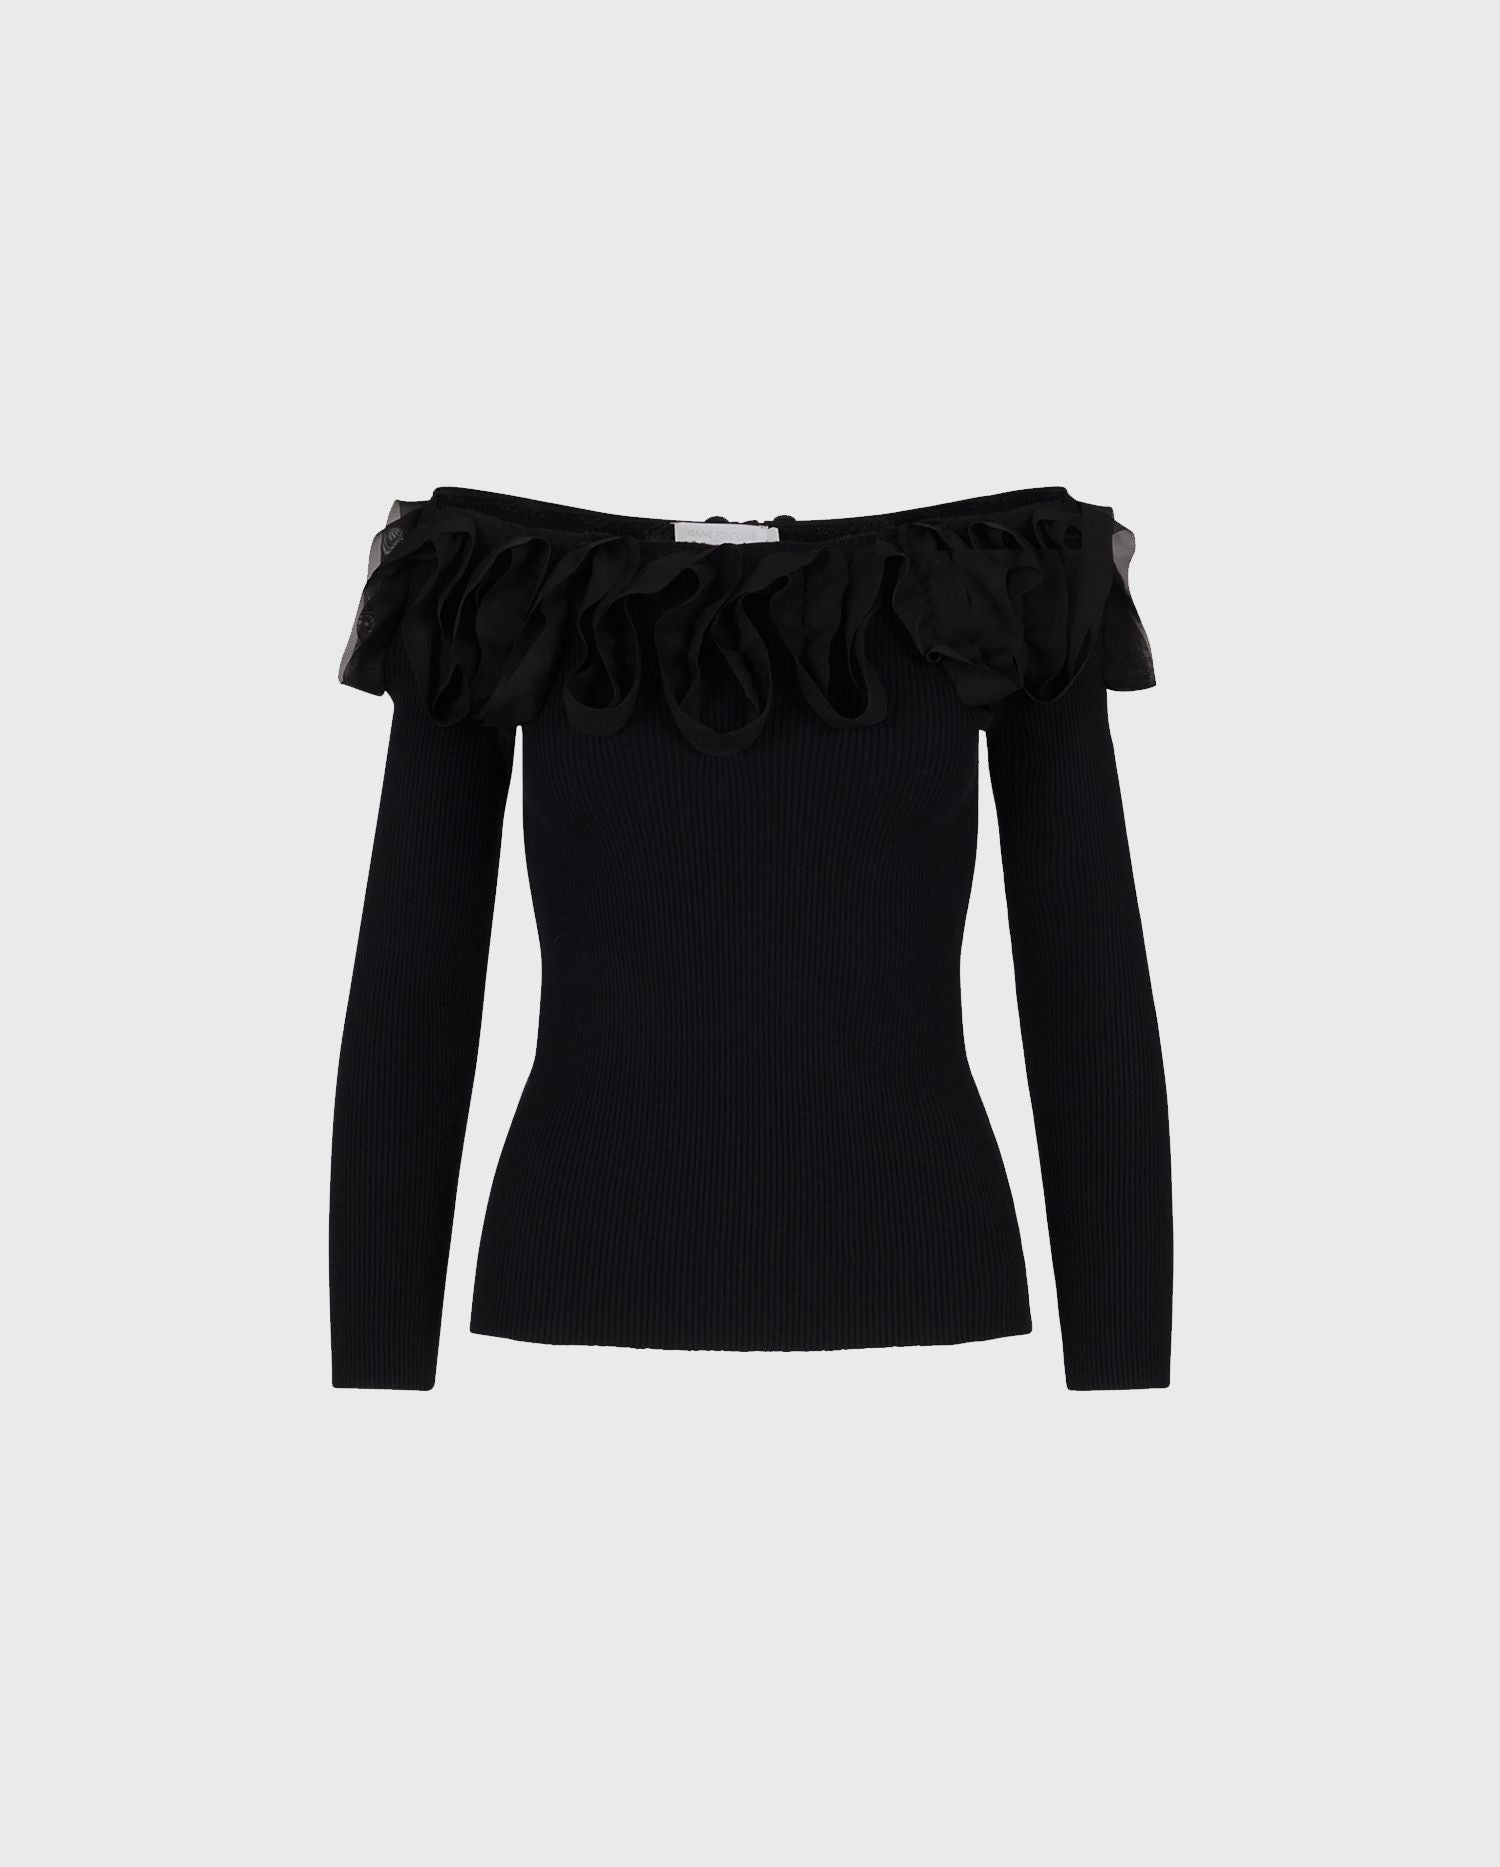 The FEDA knit top is the perfect style to take you through the season in looks of luxury